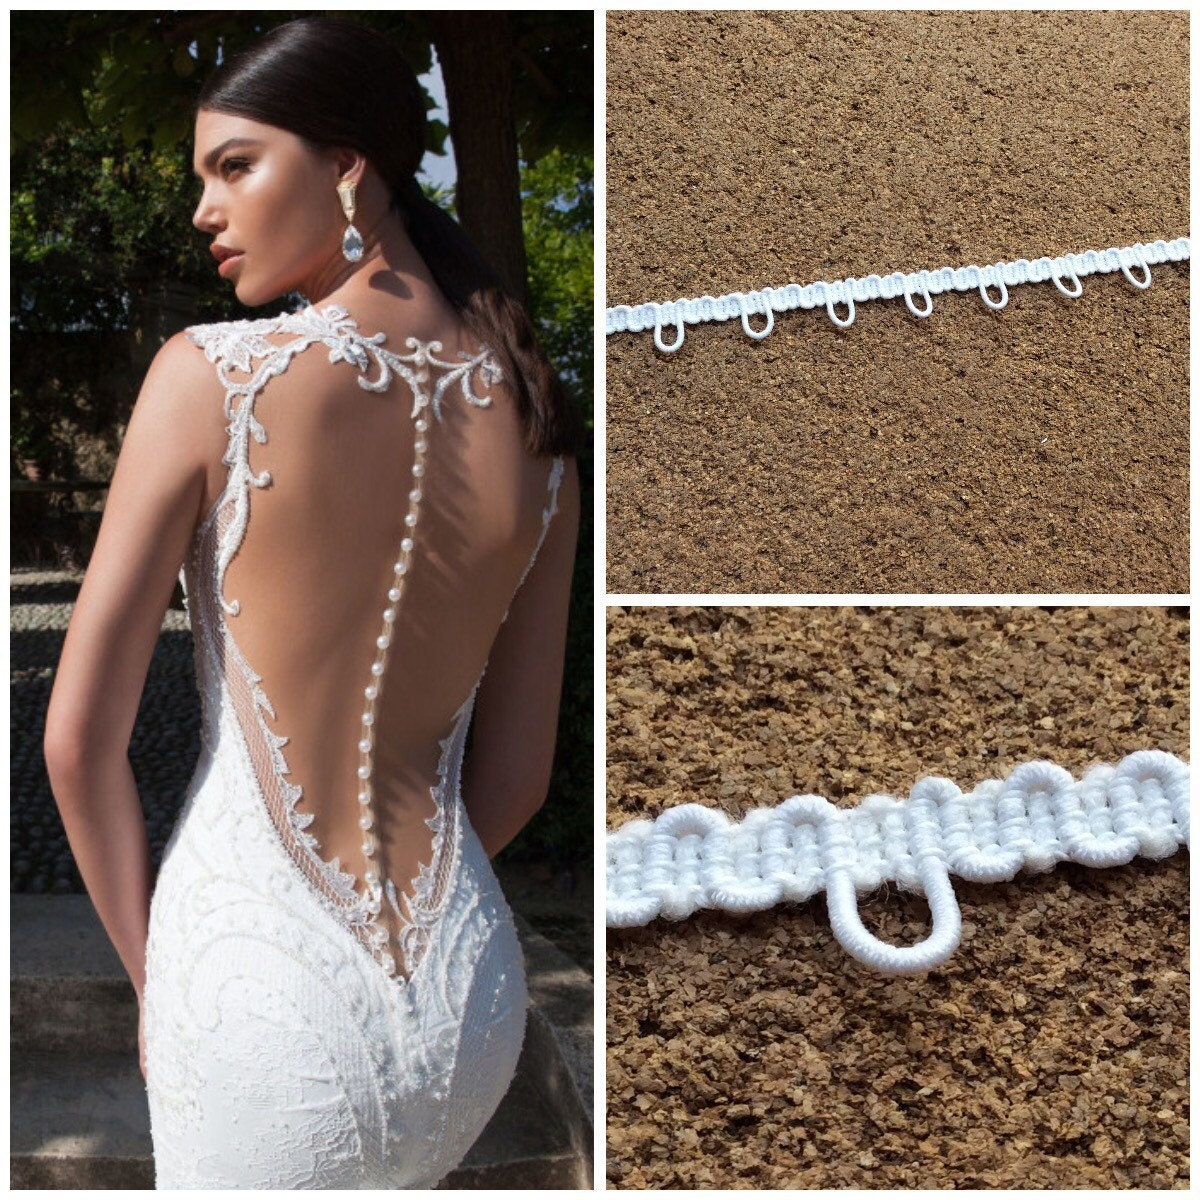 elastic loops for buttons on bridal dress